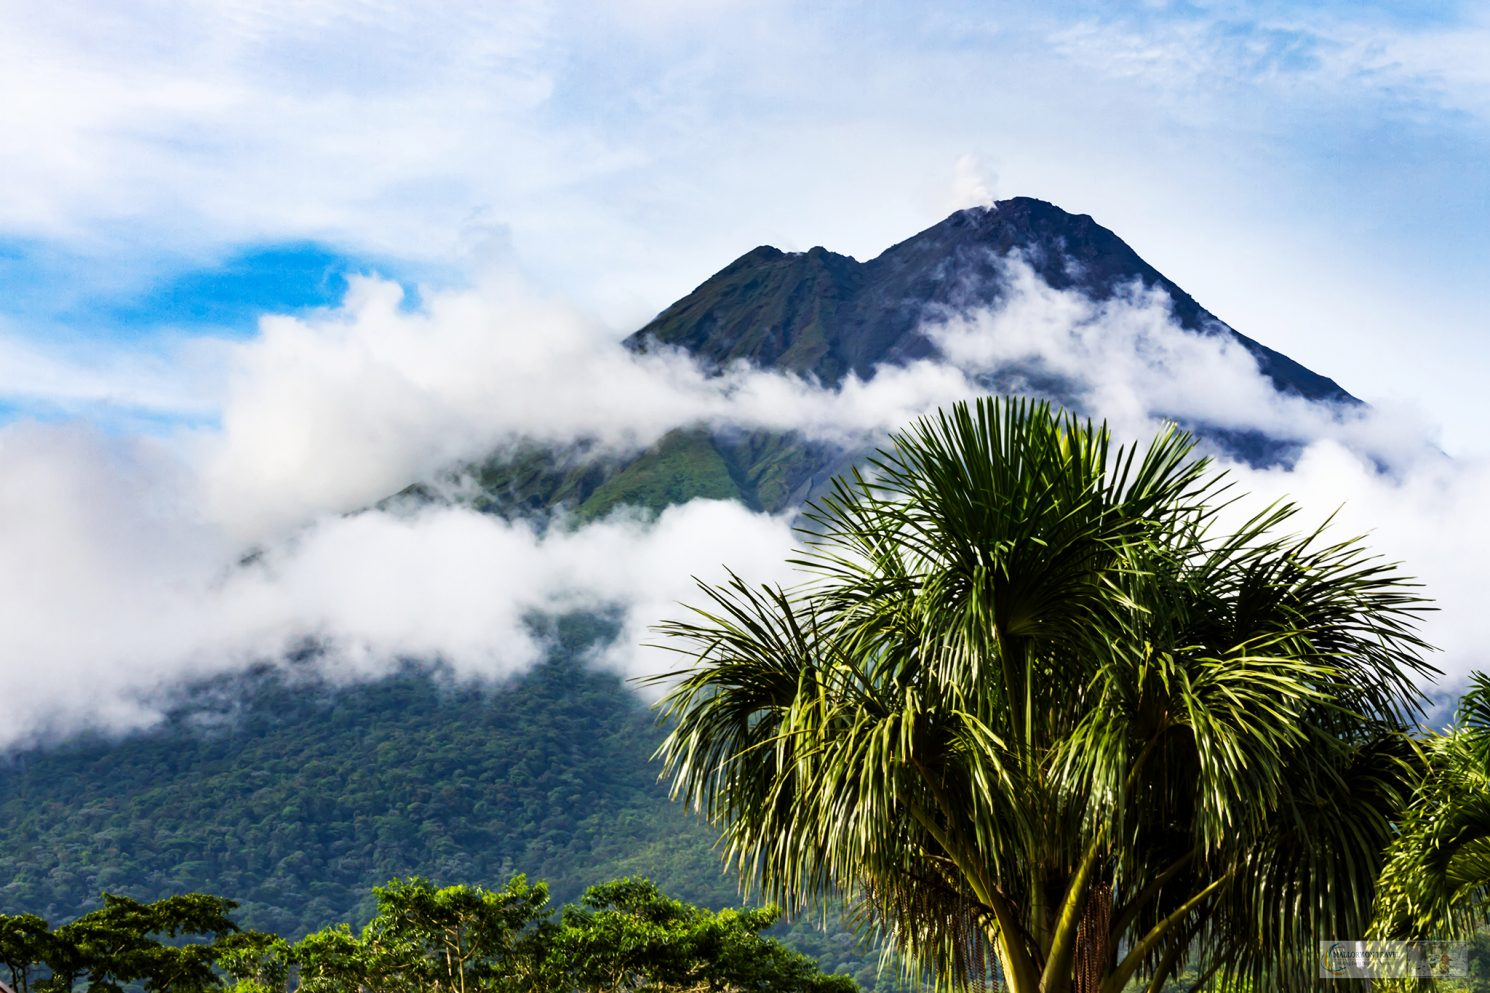 Clouds over Arenal Volcano National Park in Costa Rica from the town of La Fortuna on Mallory on Travel adventure travel, photography, travel Iain Mallory_CostaRica 001-86